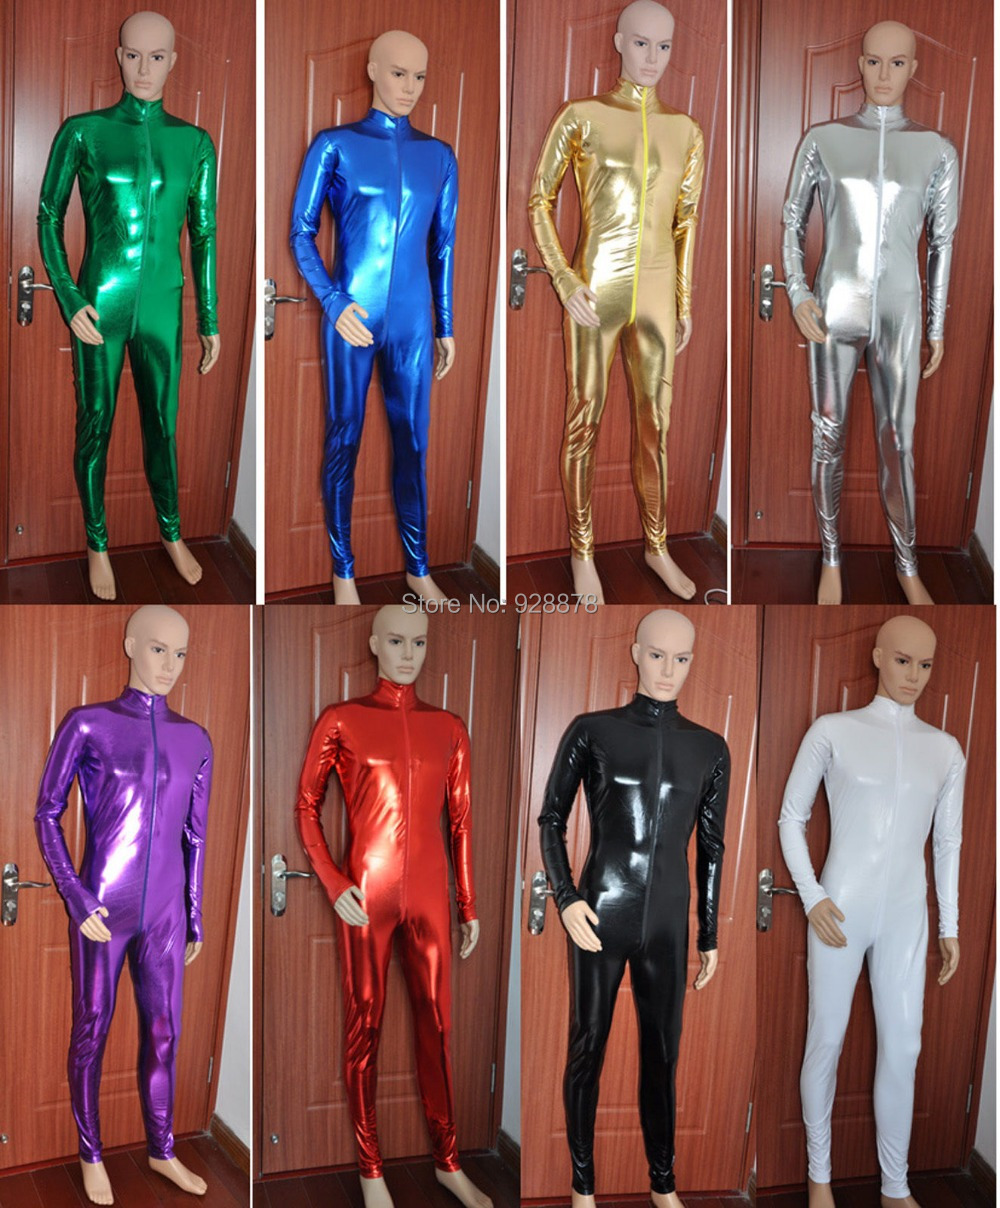 Free P&P Halloween Party Lycra spandex zentai costume Unisex shiny Metallic catsuits front zipper ,AAK Back Zip, XS/S/M/L/XL/XXL - Online Store 928878 store